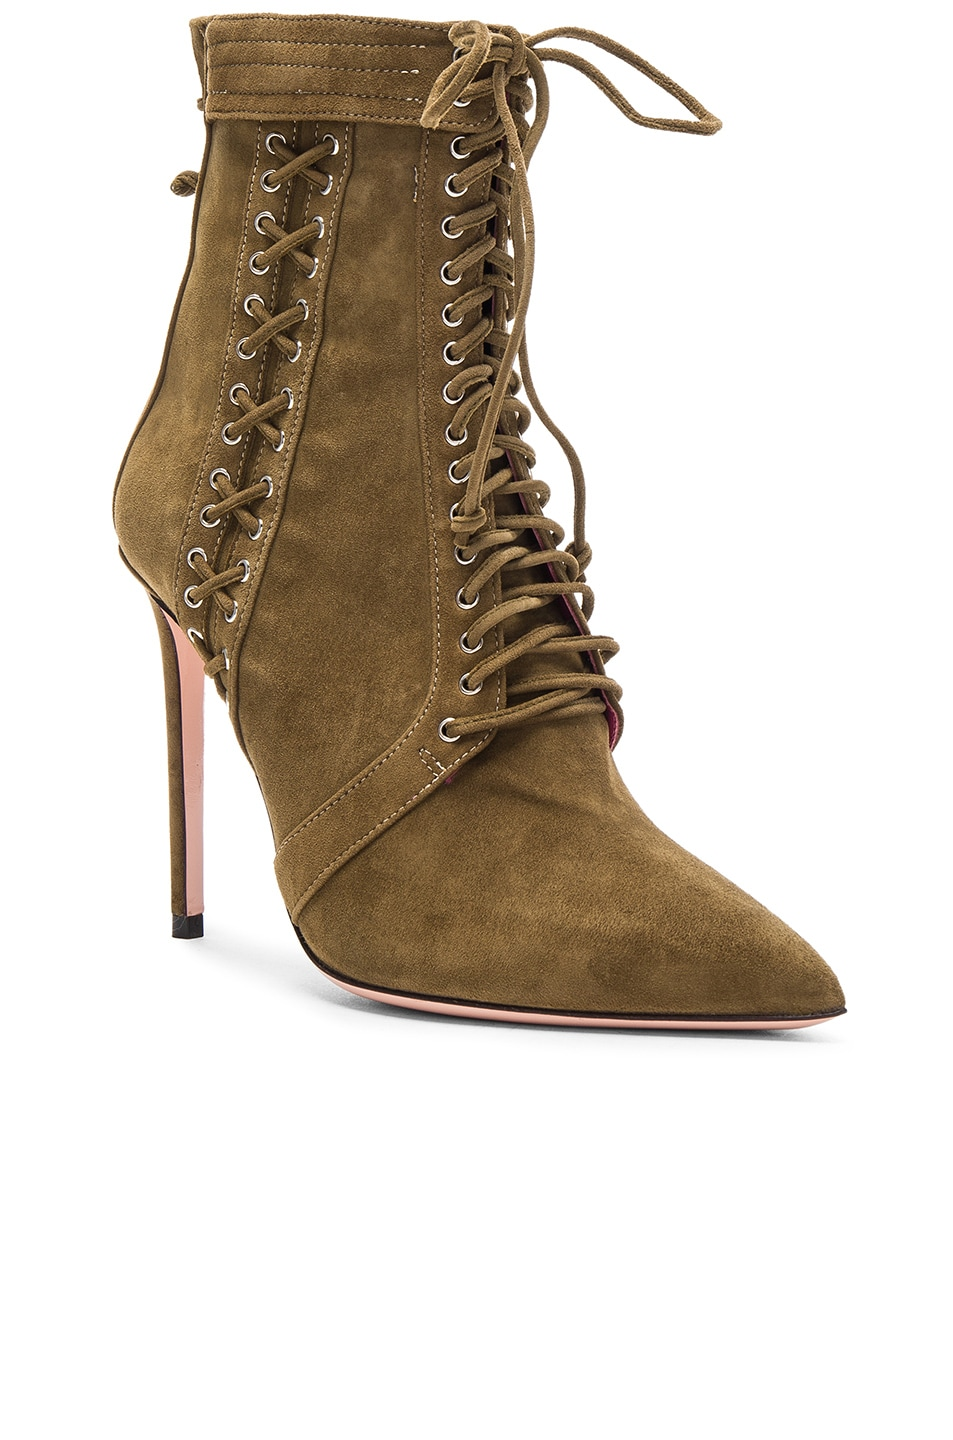 Image 2 of Oscar Tiye Samira Suede Booties in Military